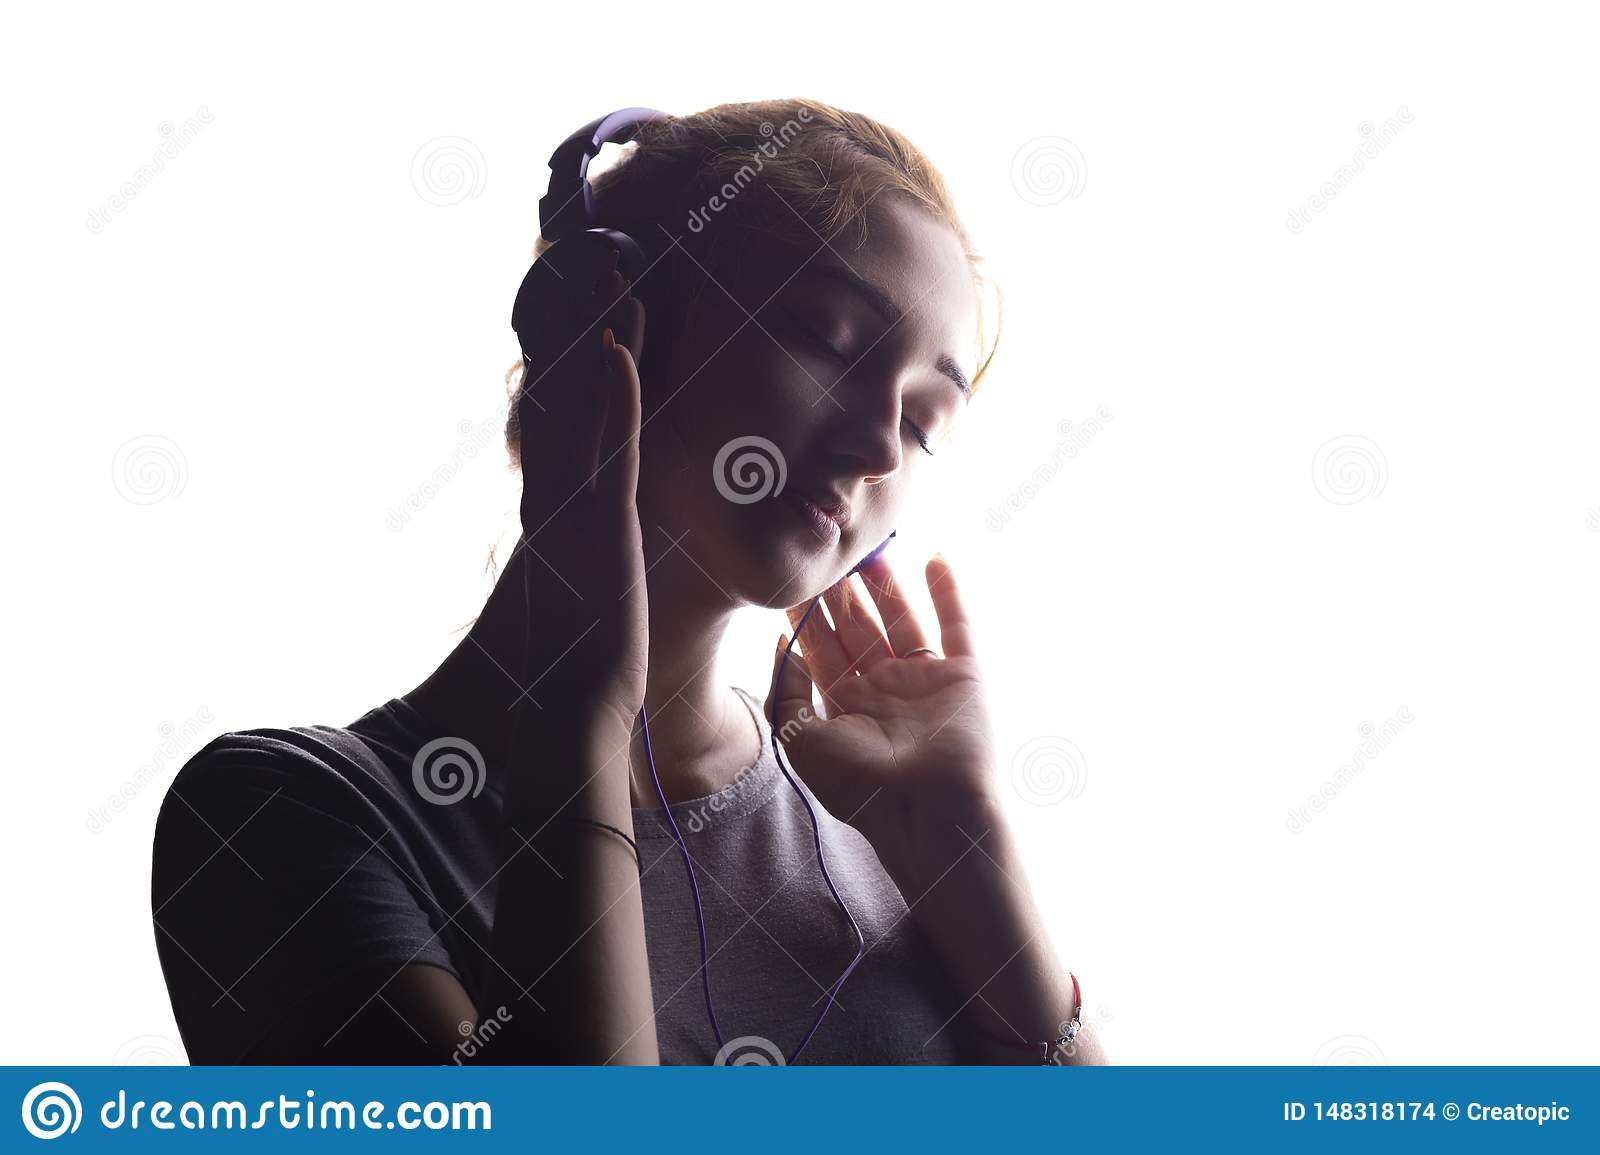 Silhouette of a romantic girl listening to music in headphones, young woman relaxing on a white isolated background, concept of